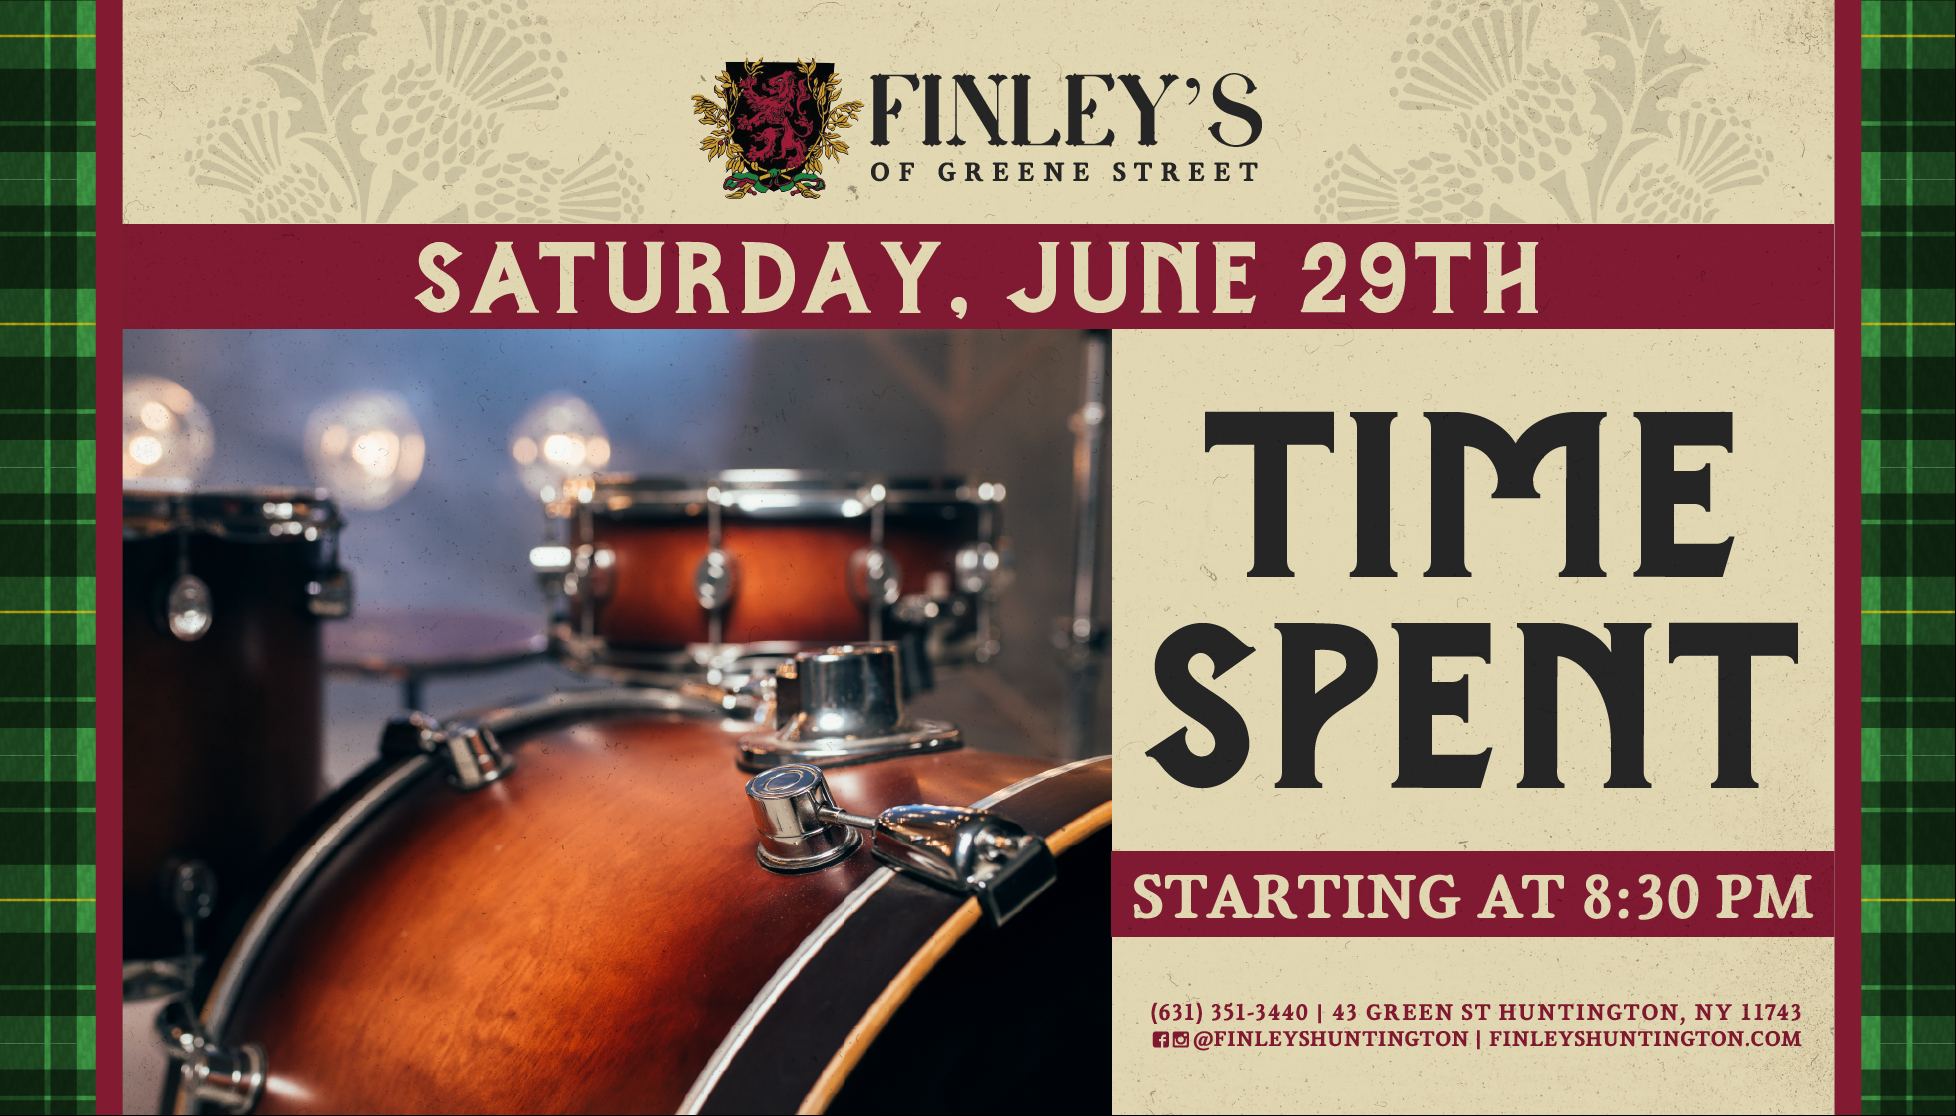 Flyer for live music with Time Spent at 8:30pm on June 29th.